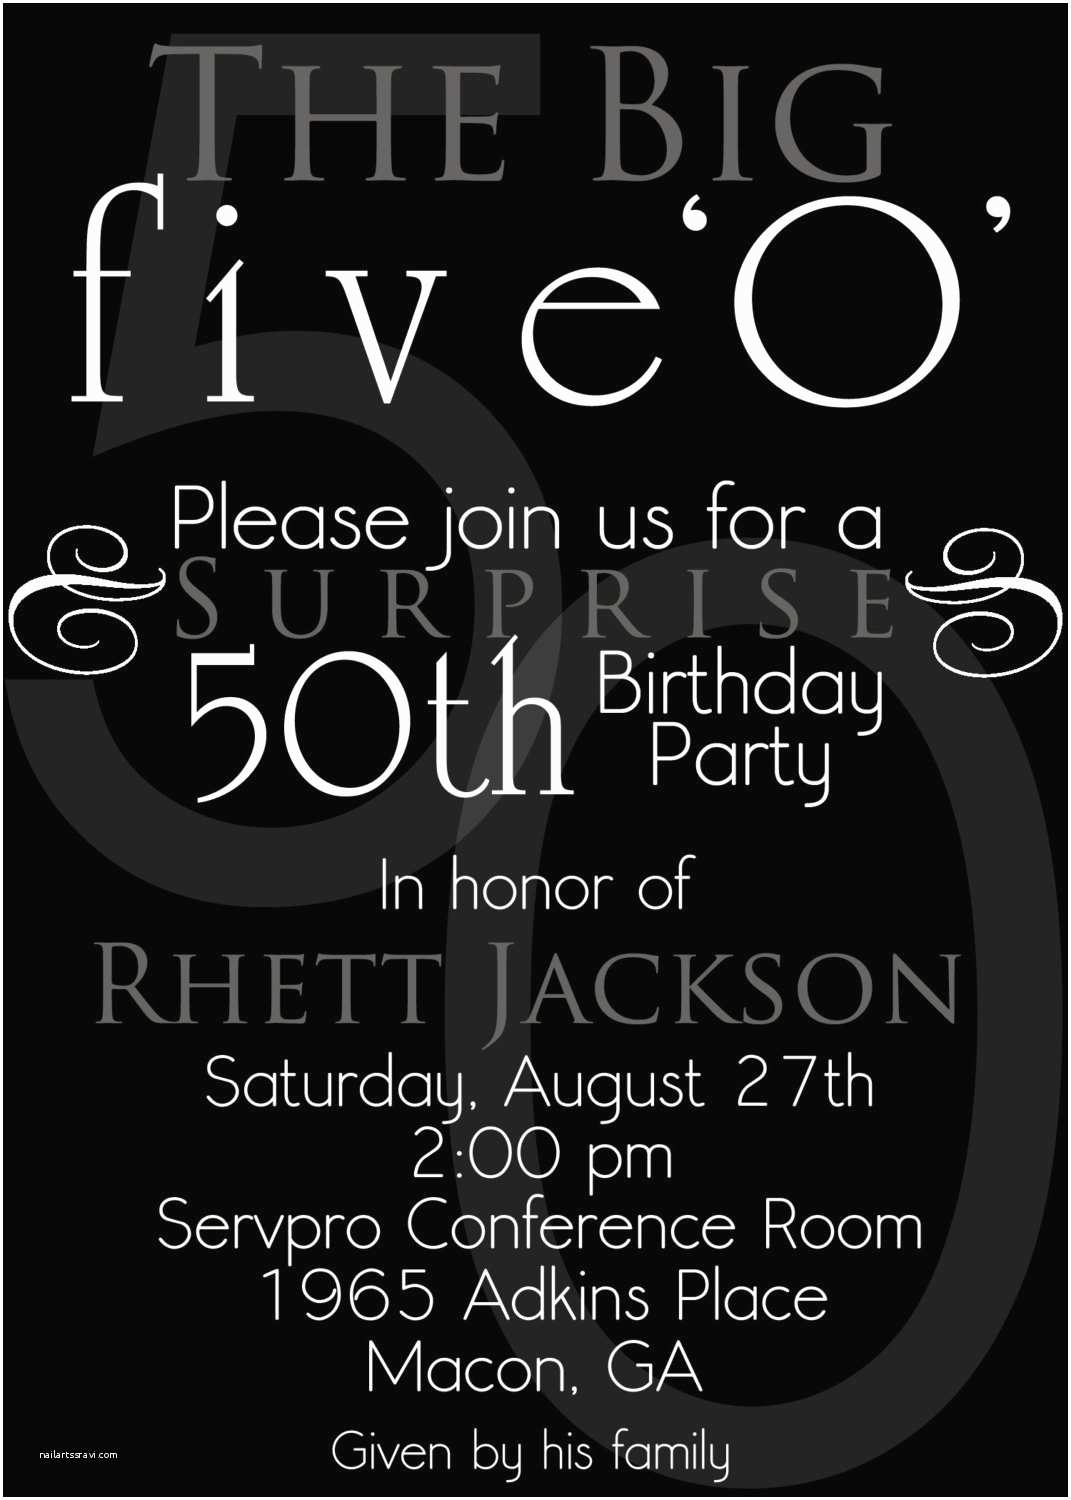 50th Birthday Party Invitations for Her 50th Birthday Invitations for Her